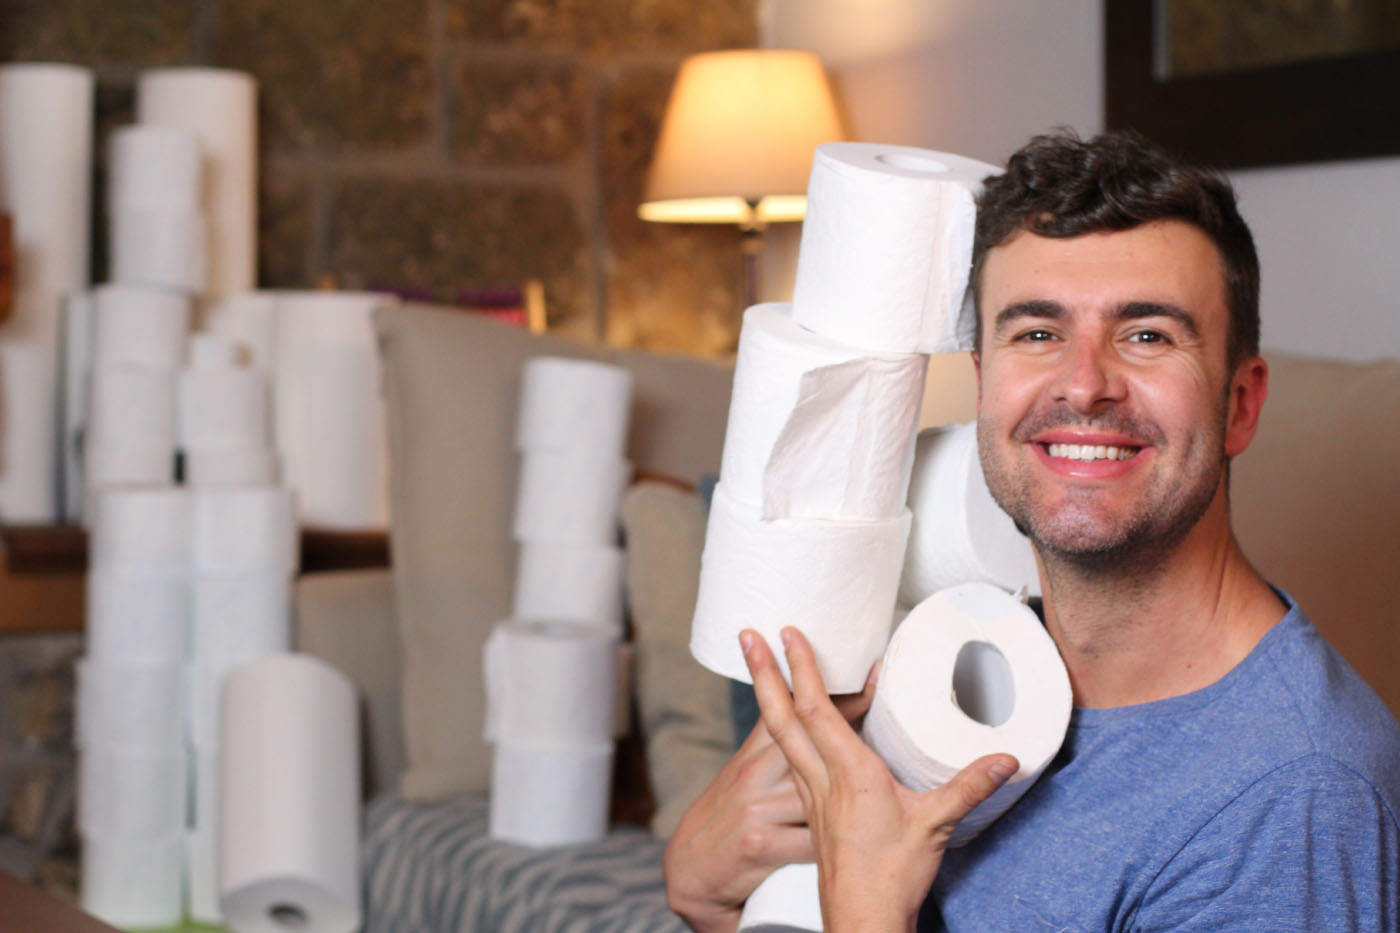 Happy to be surrounded by toilet roll